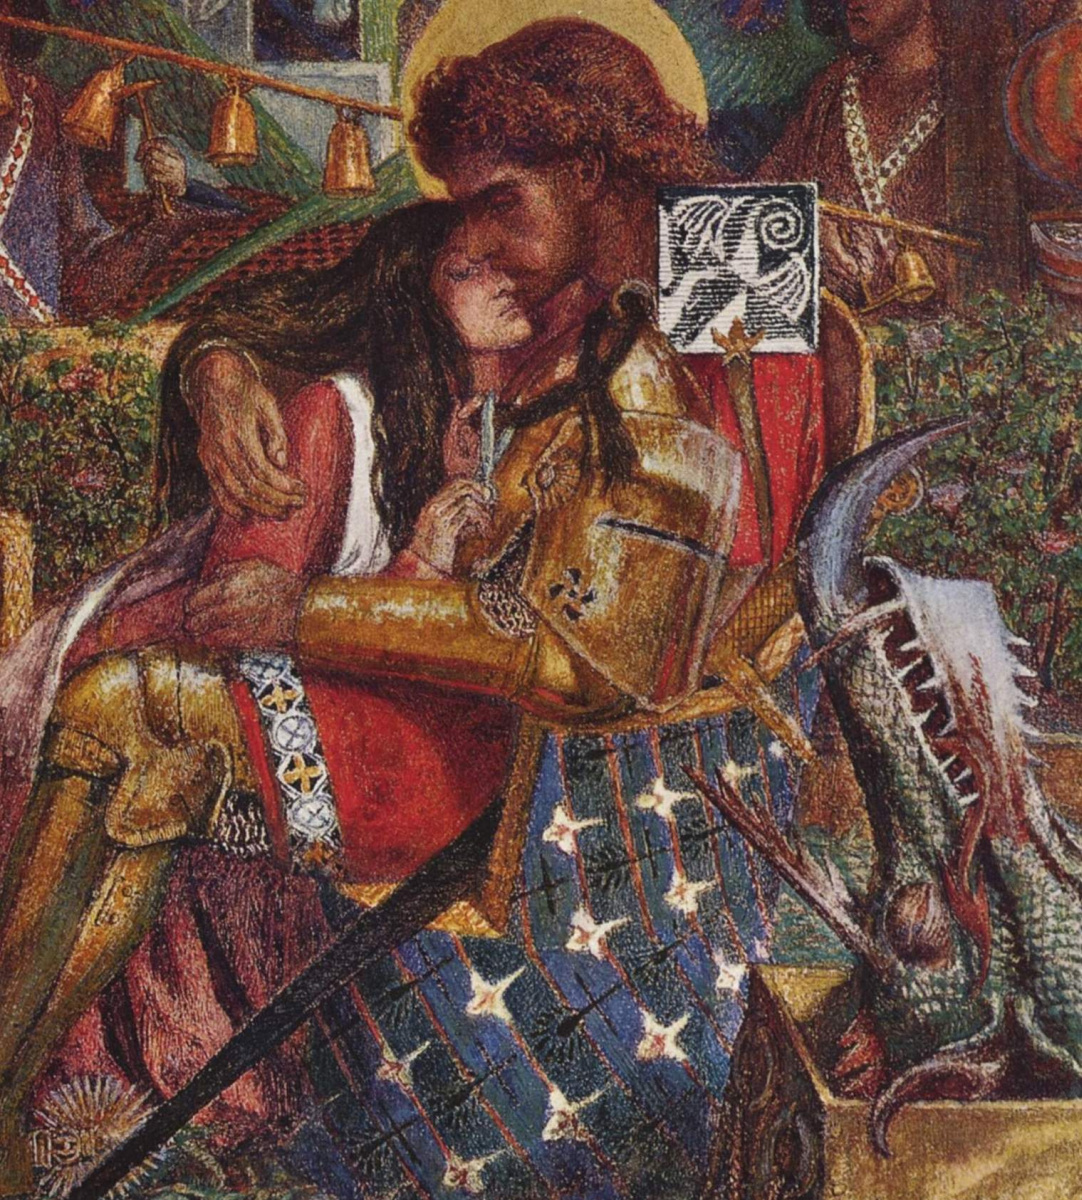 Dante Gabriel Rossetti. The wedding of Saint George and Princess Sabra. Fragment